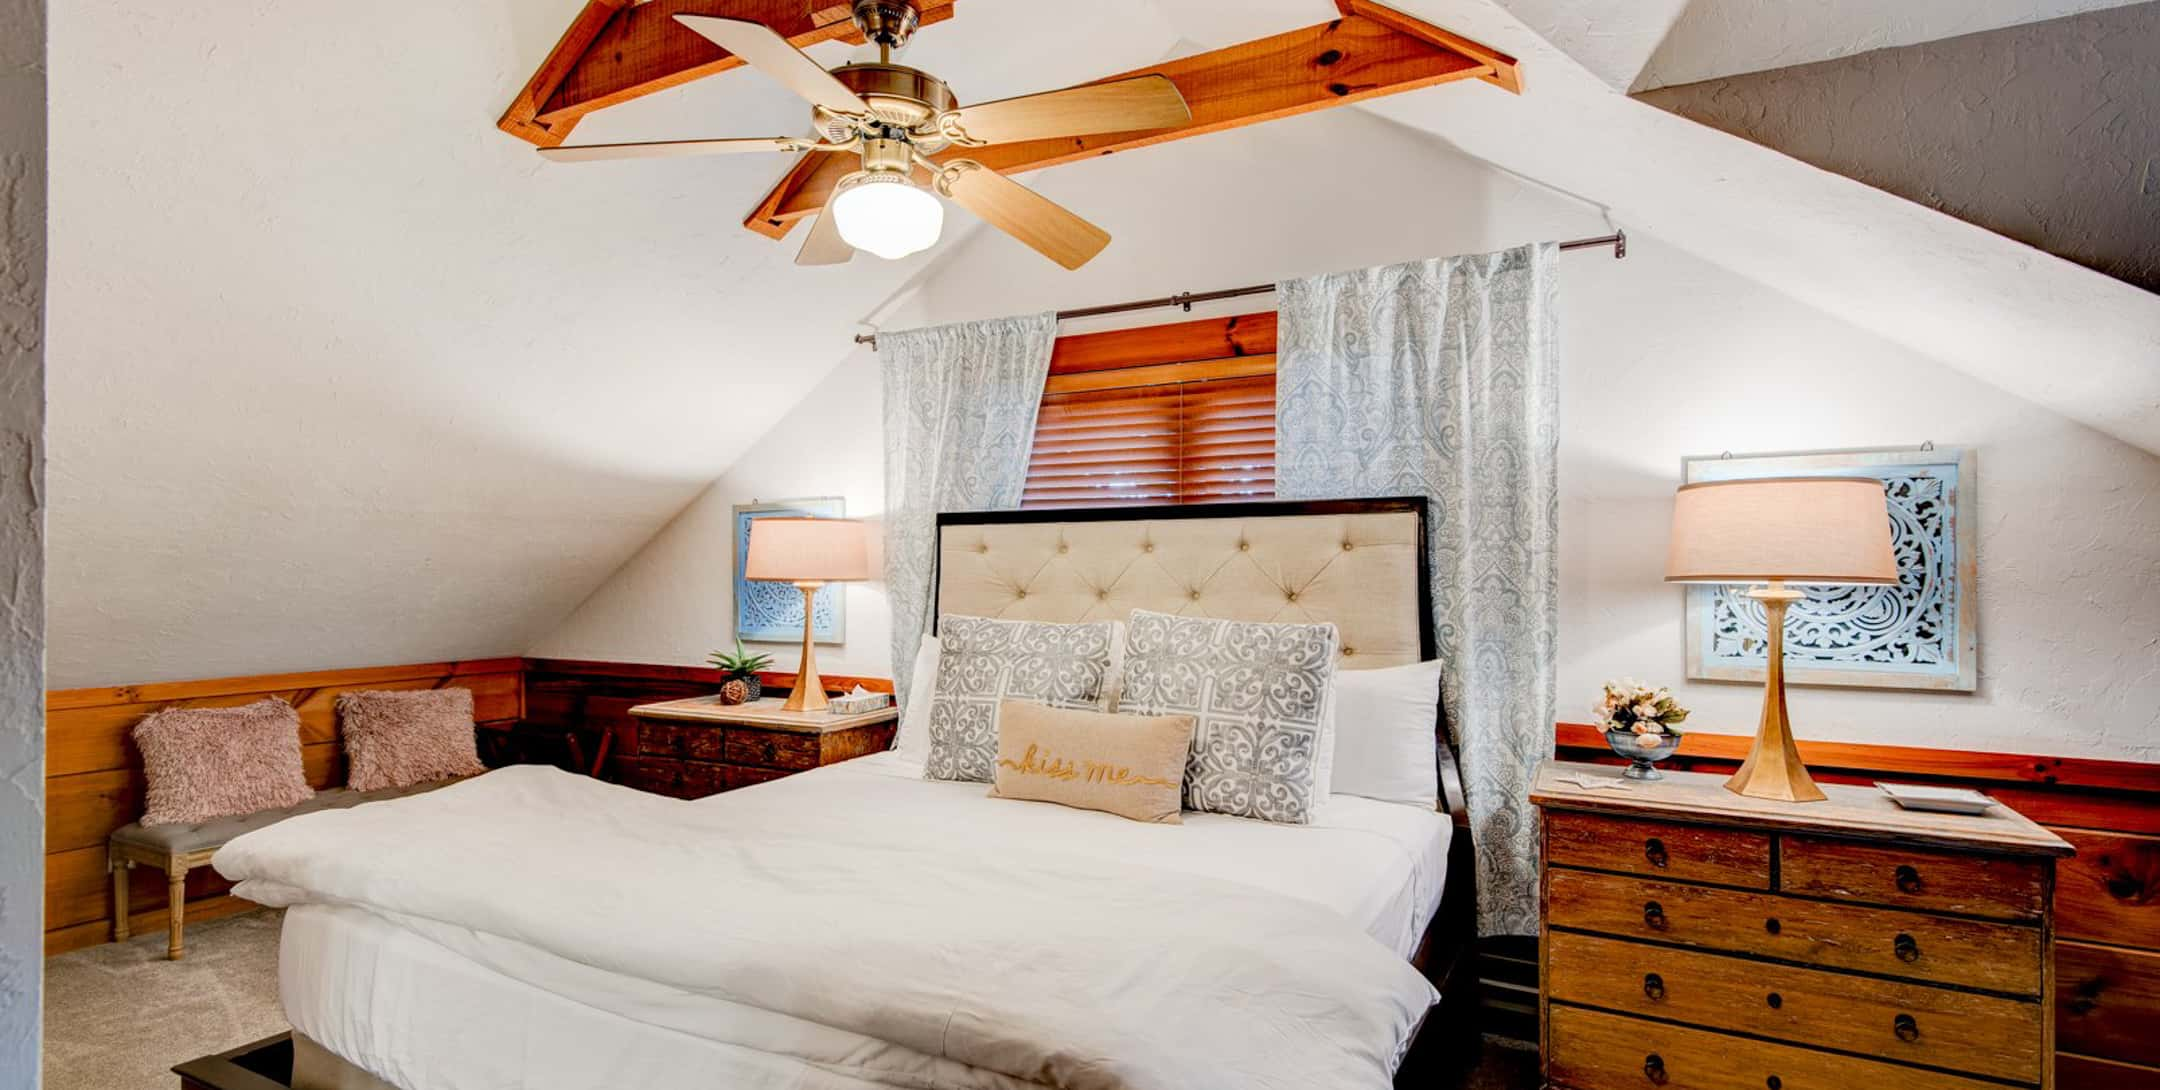 Bedroom in the Raspberry Hill cabin with a ceiling fan